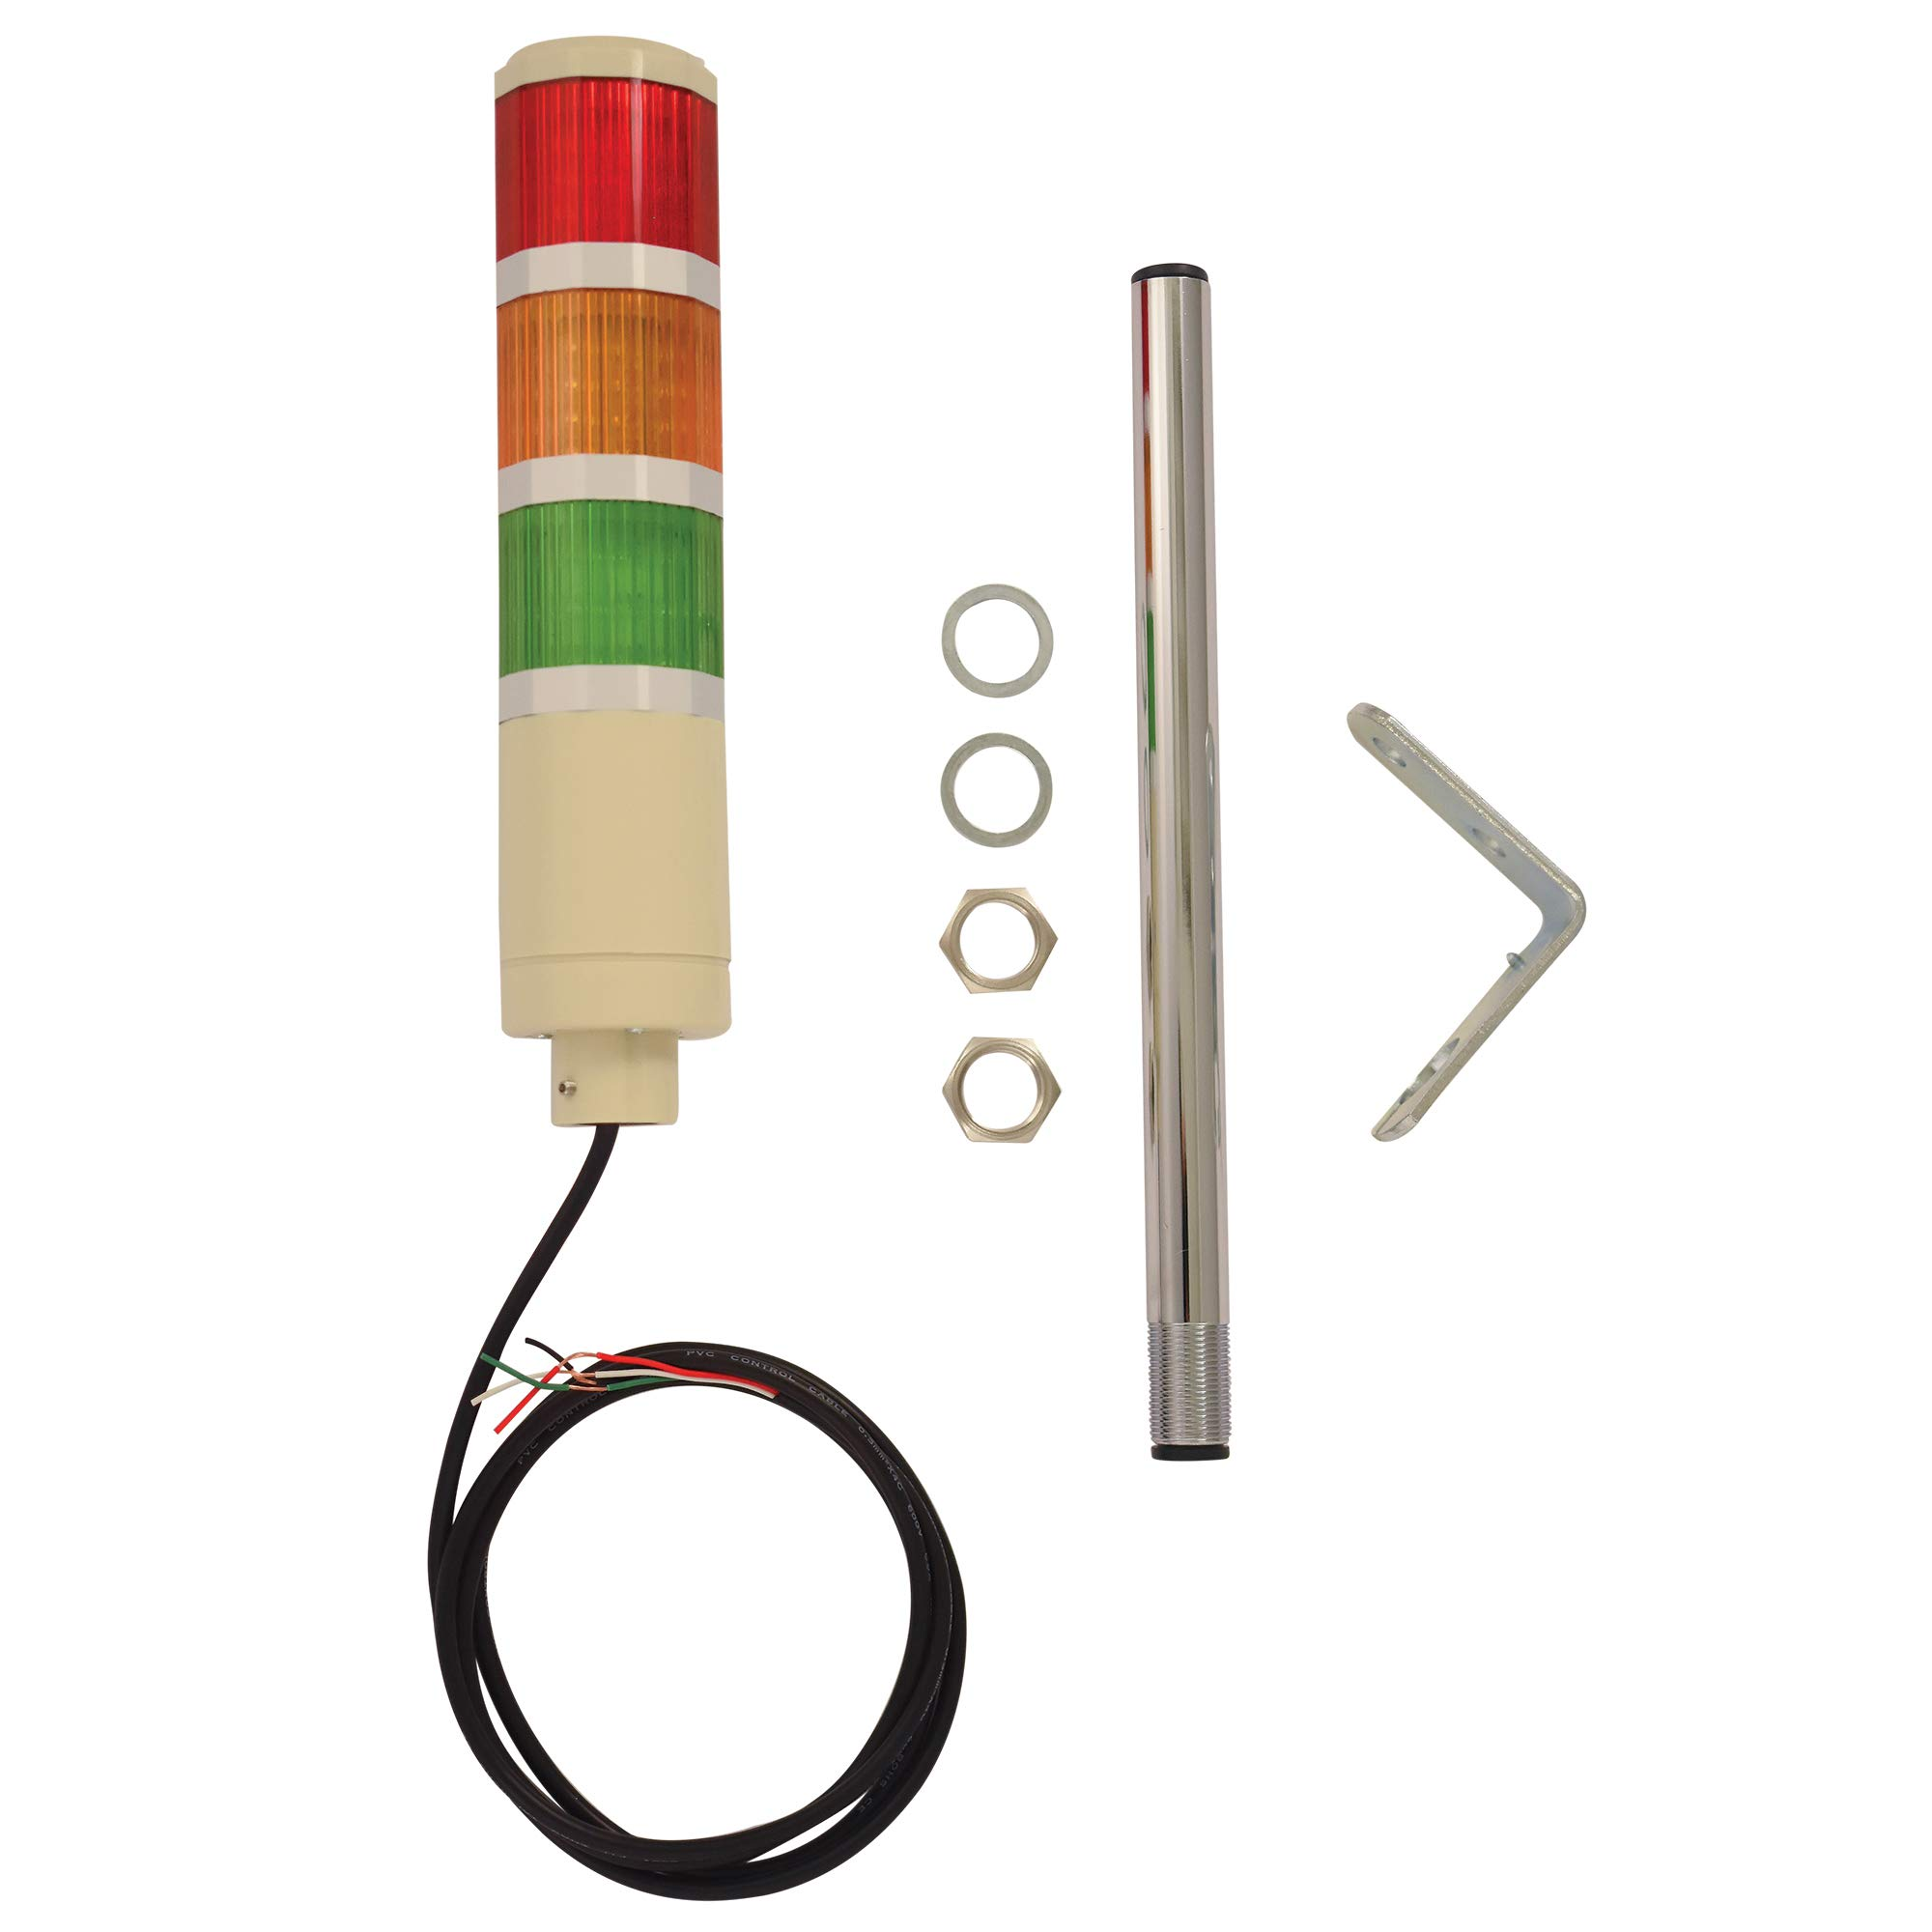 Signaworks 3 Stack LED Tower Light,24VDC, Steady On, Red/Amber/Green, 12 inch Threaded Pole, Right Angle Bracket, 5 Foot Pre-Wired Leads (24V AC/DC)